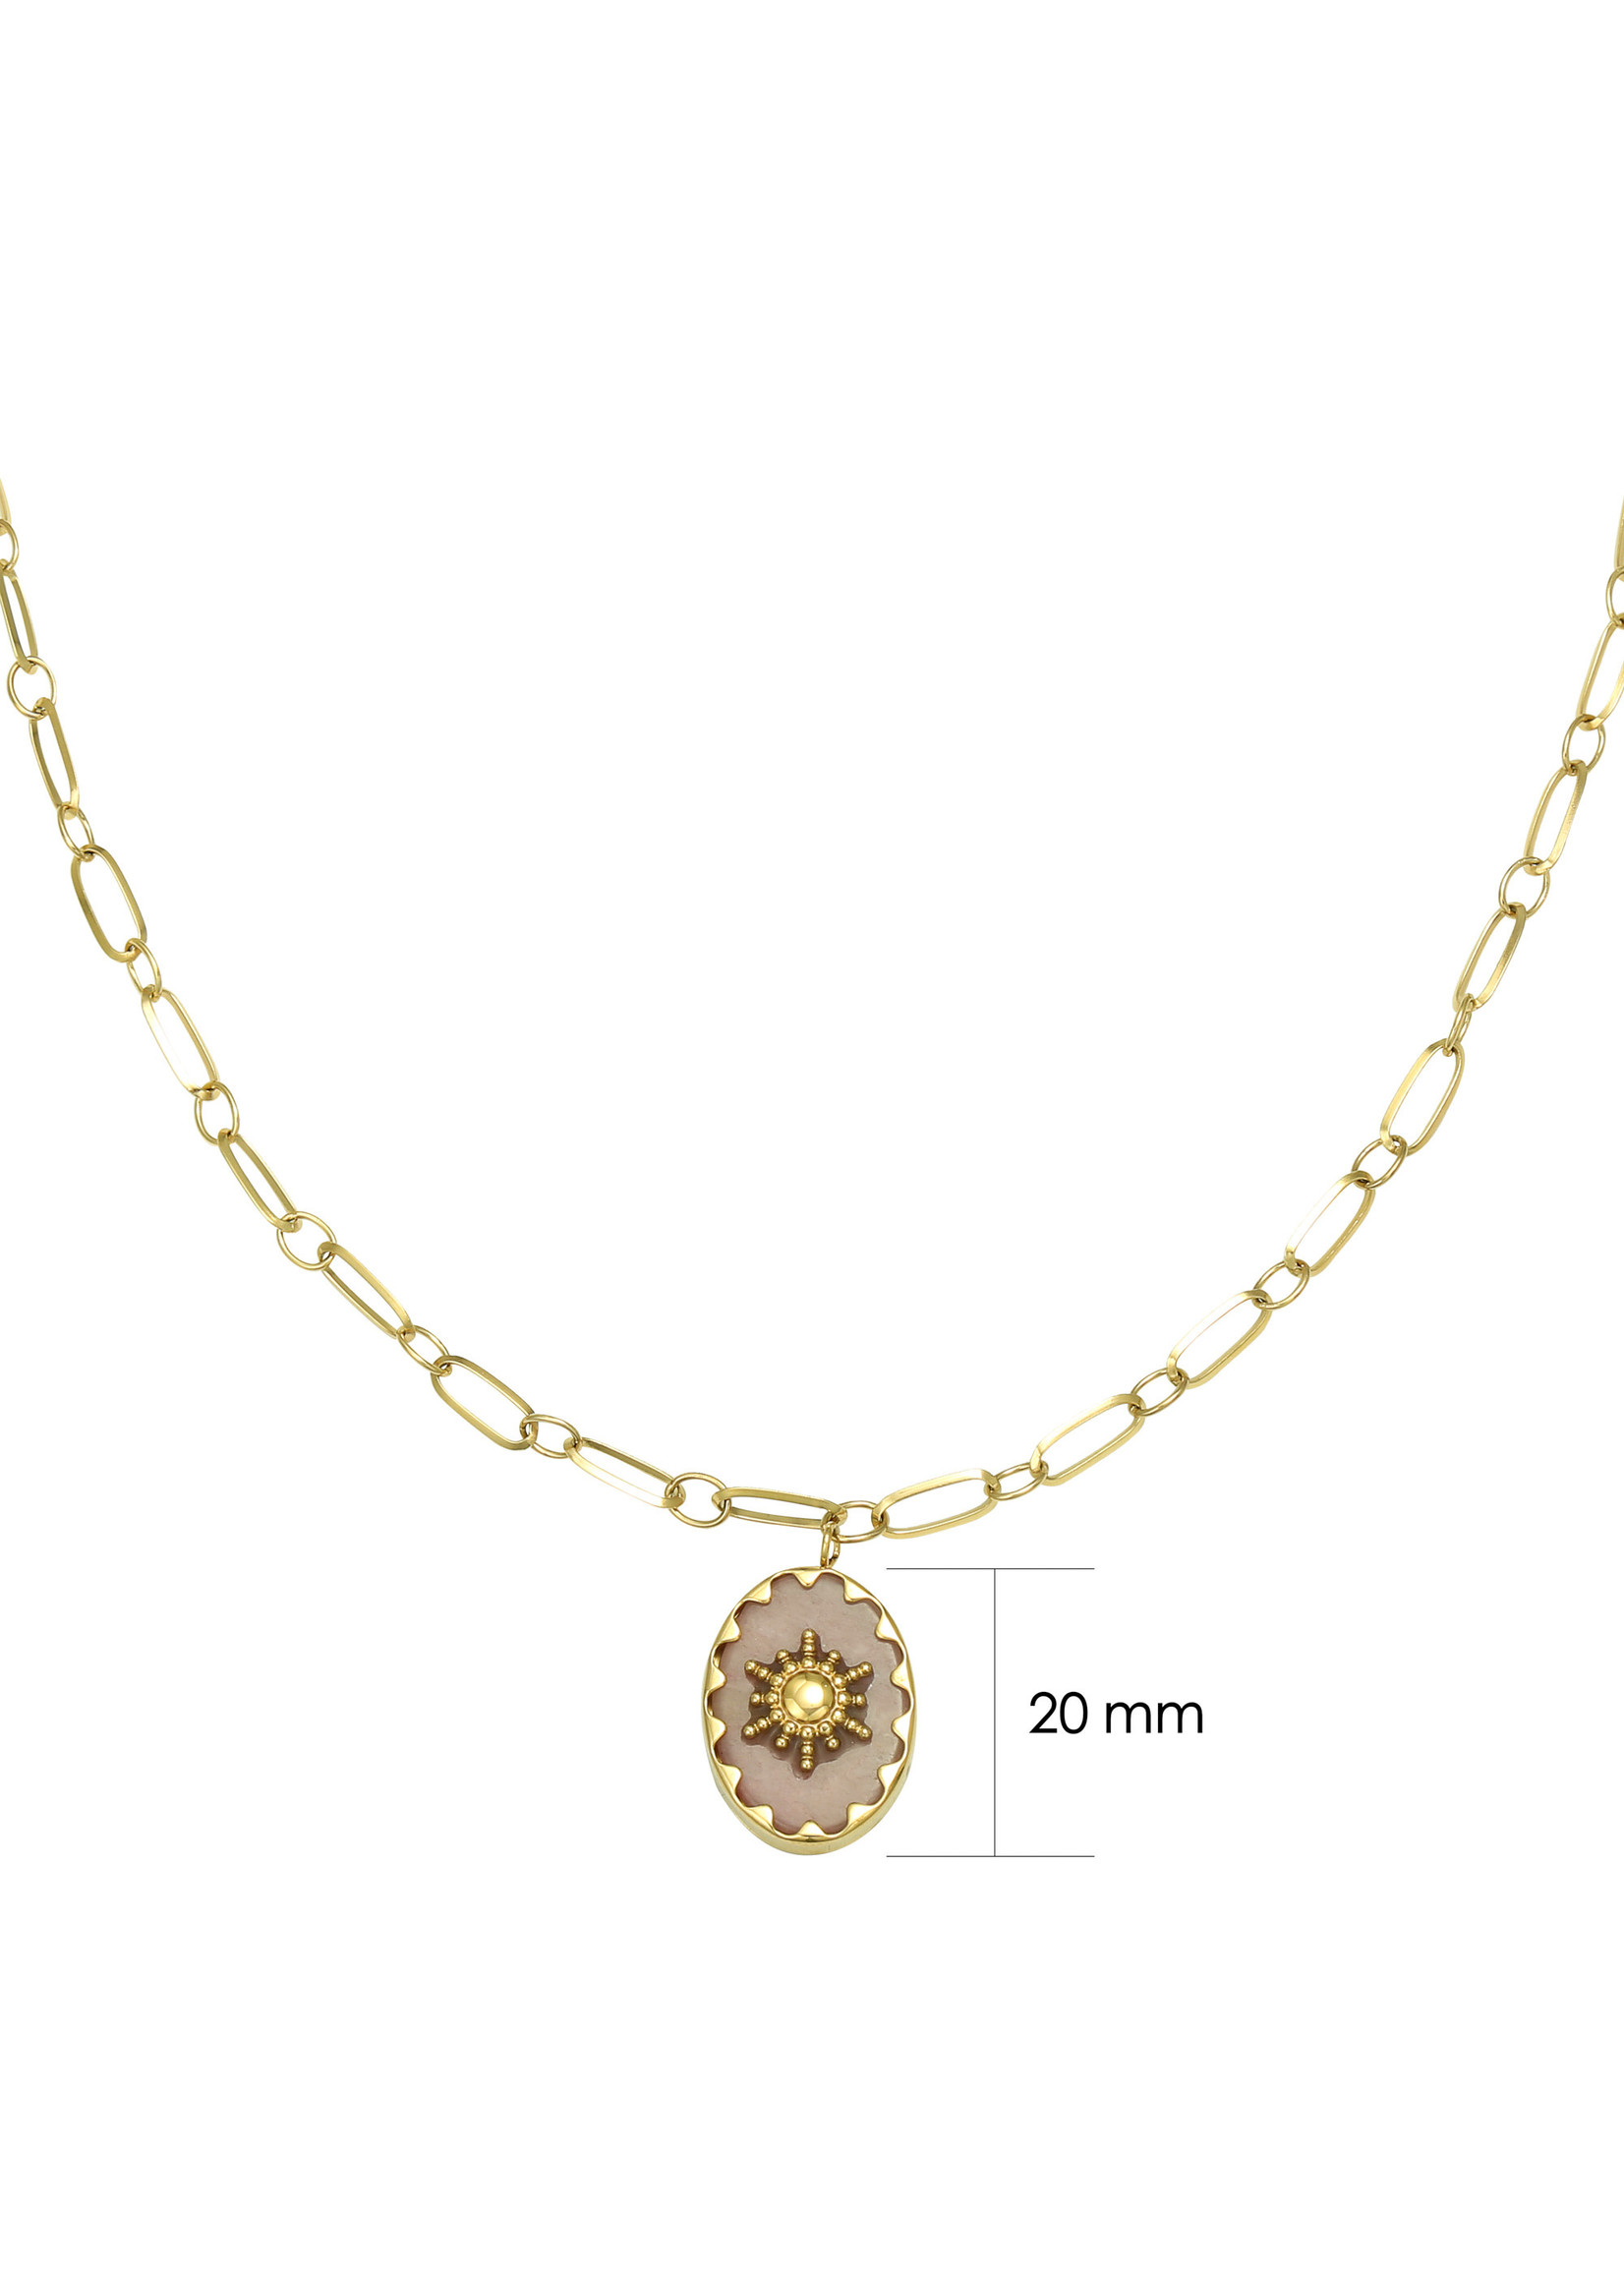 Ladybugs Ketting stainless steel Ray of light GOUD/ROZE